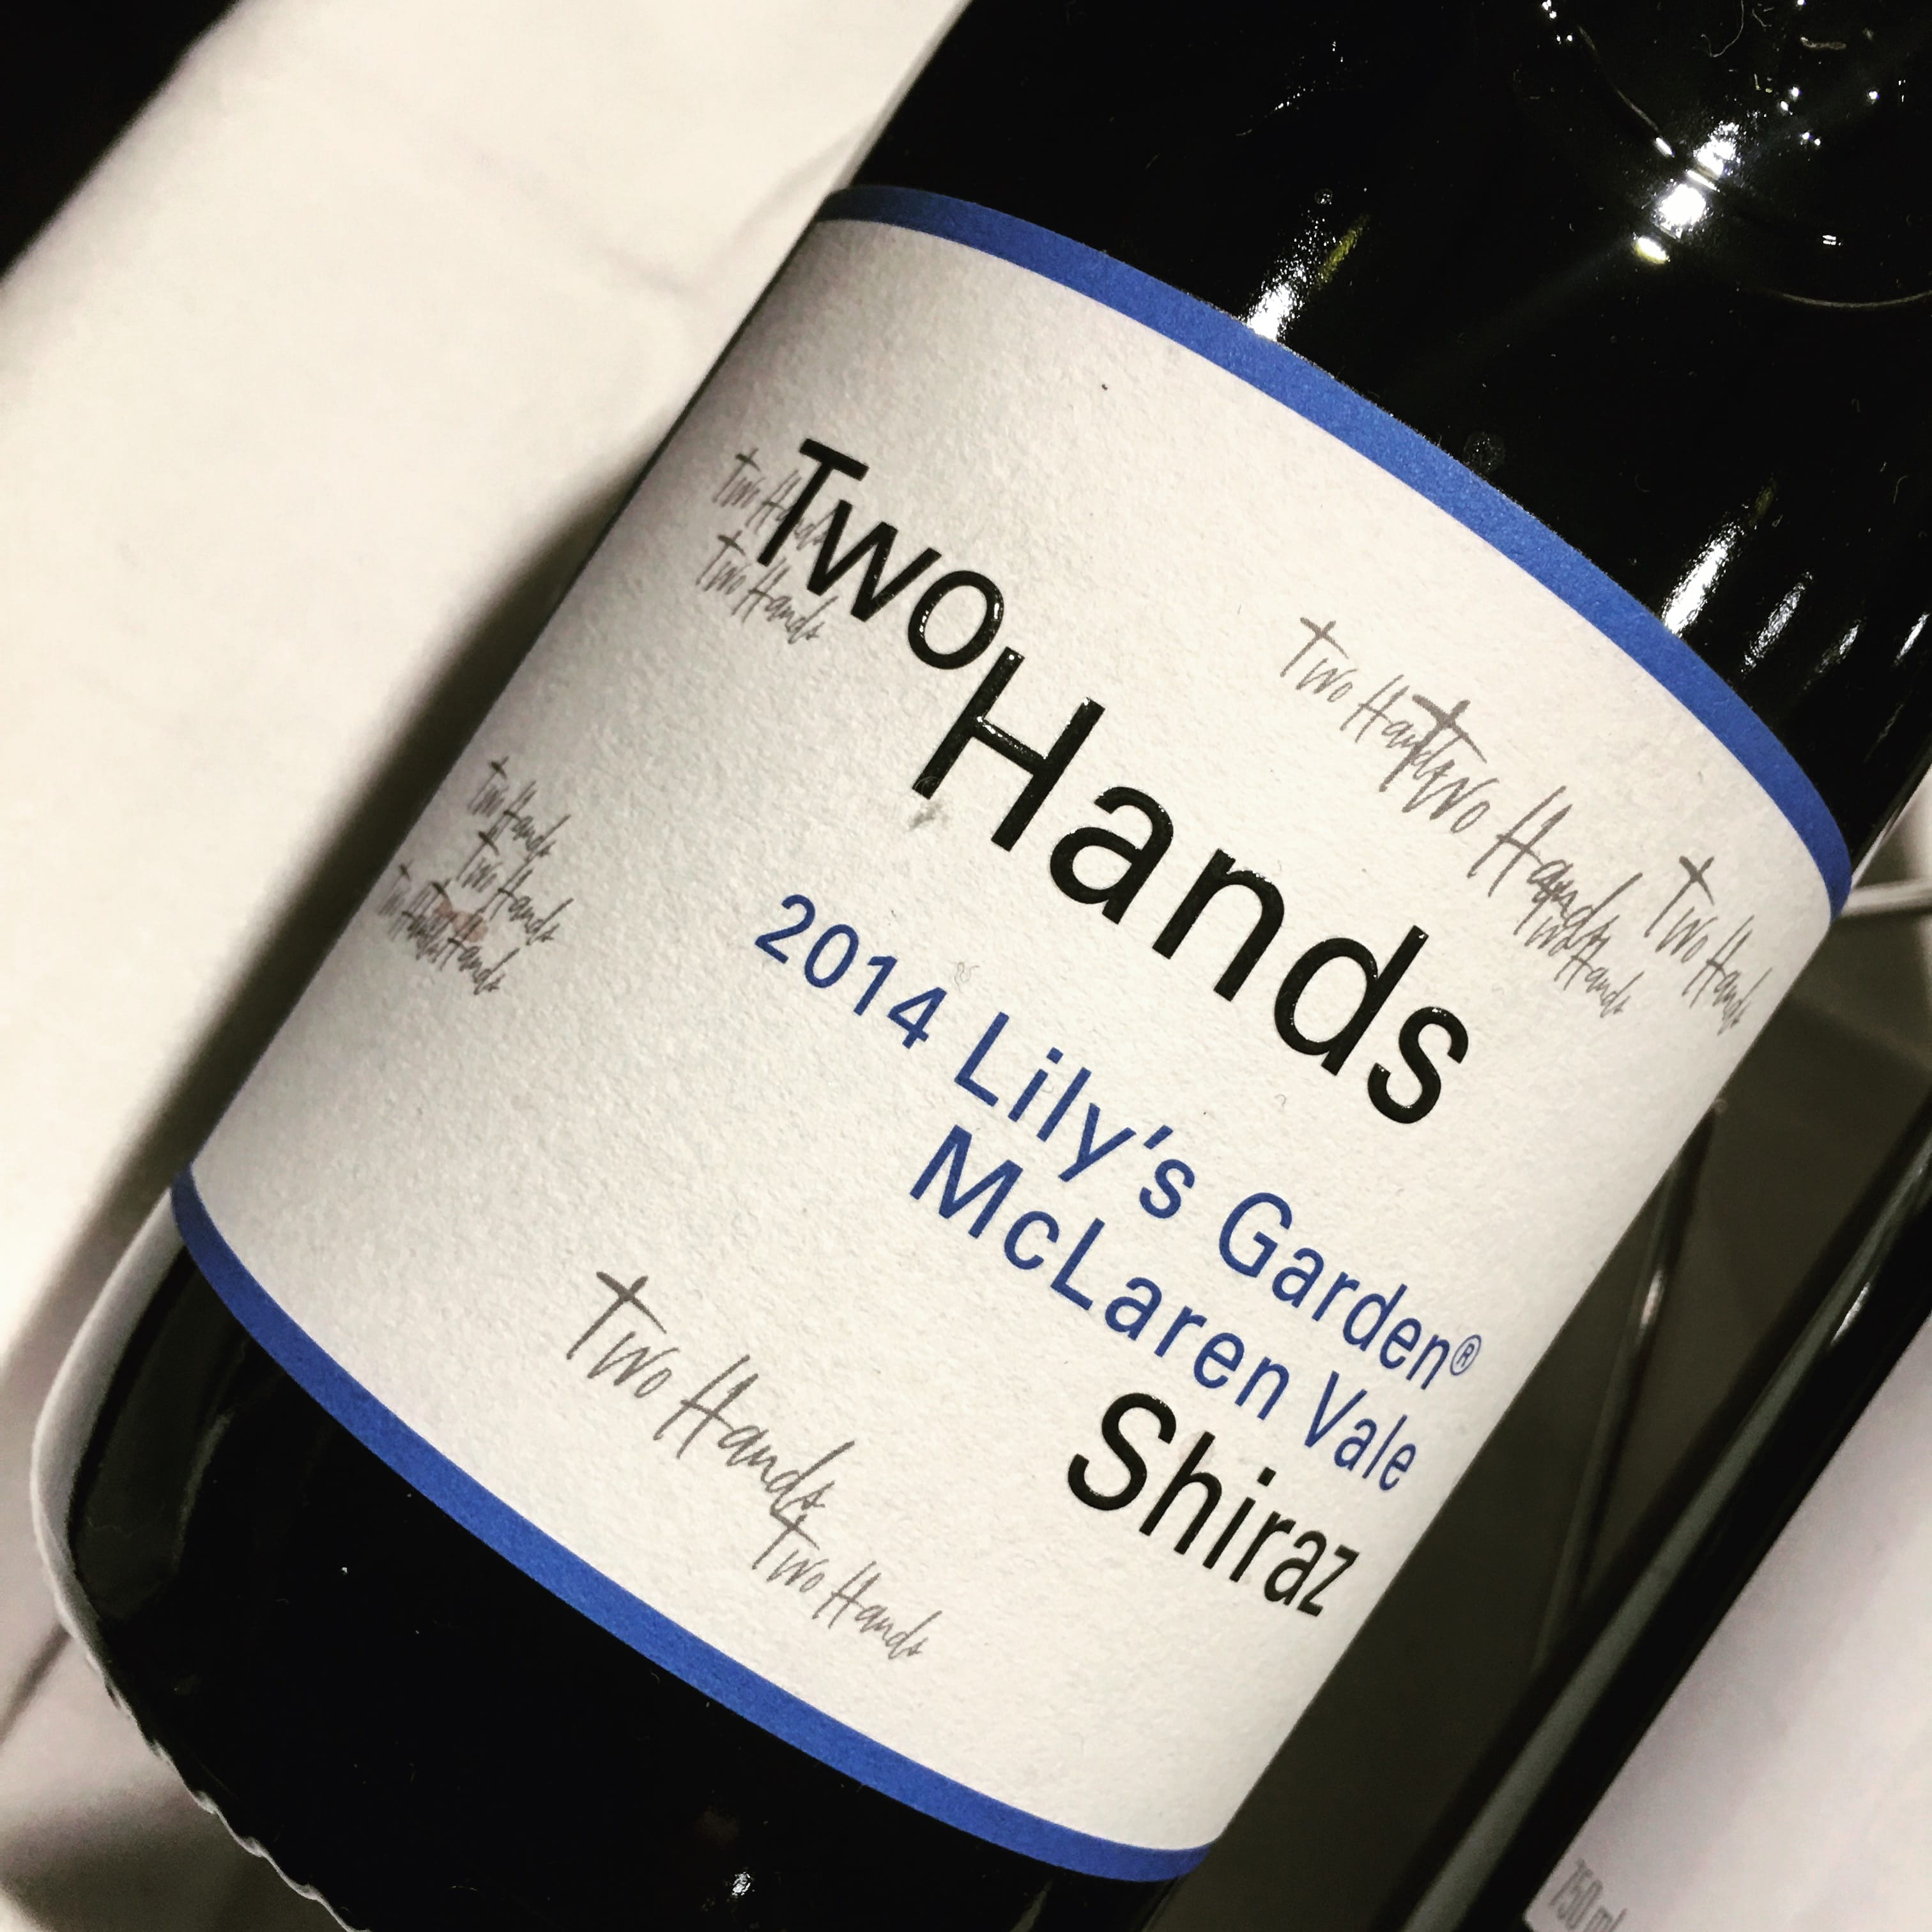 Two Hands Lily's Garden Shiraz 2014